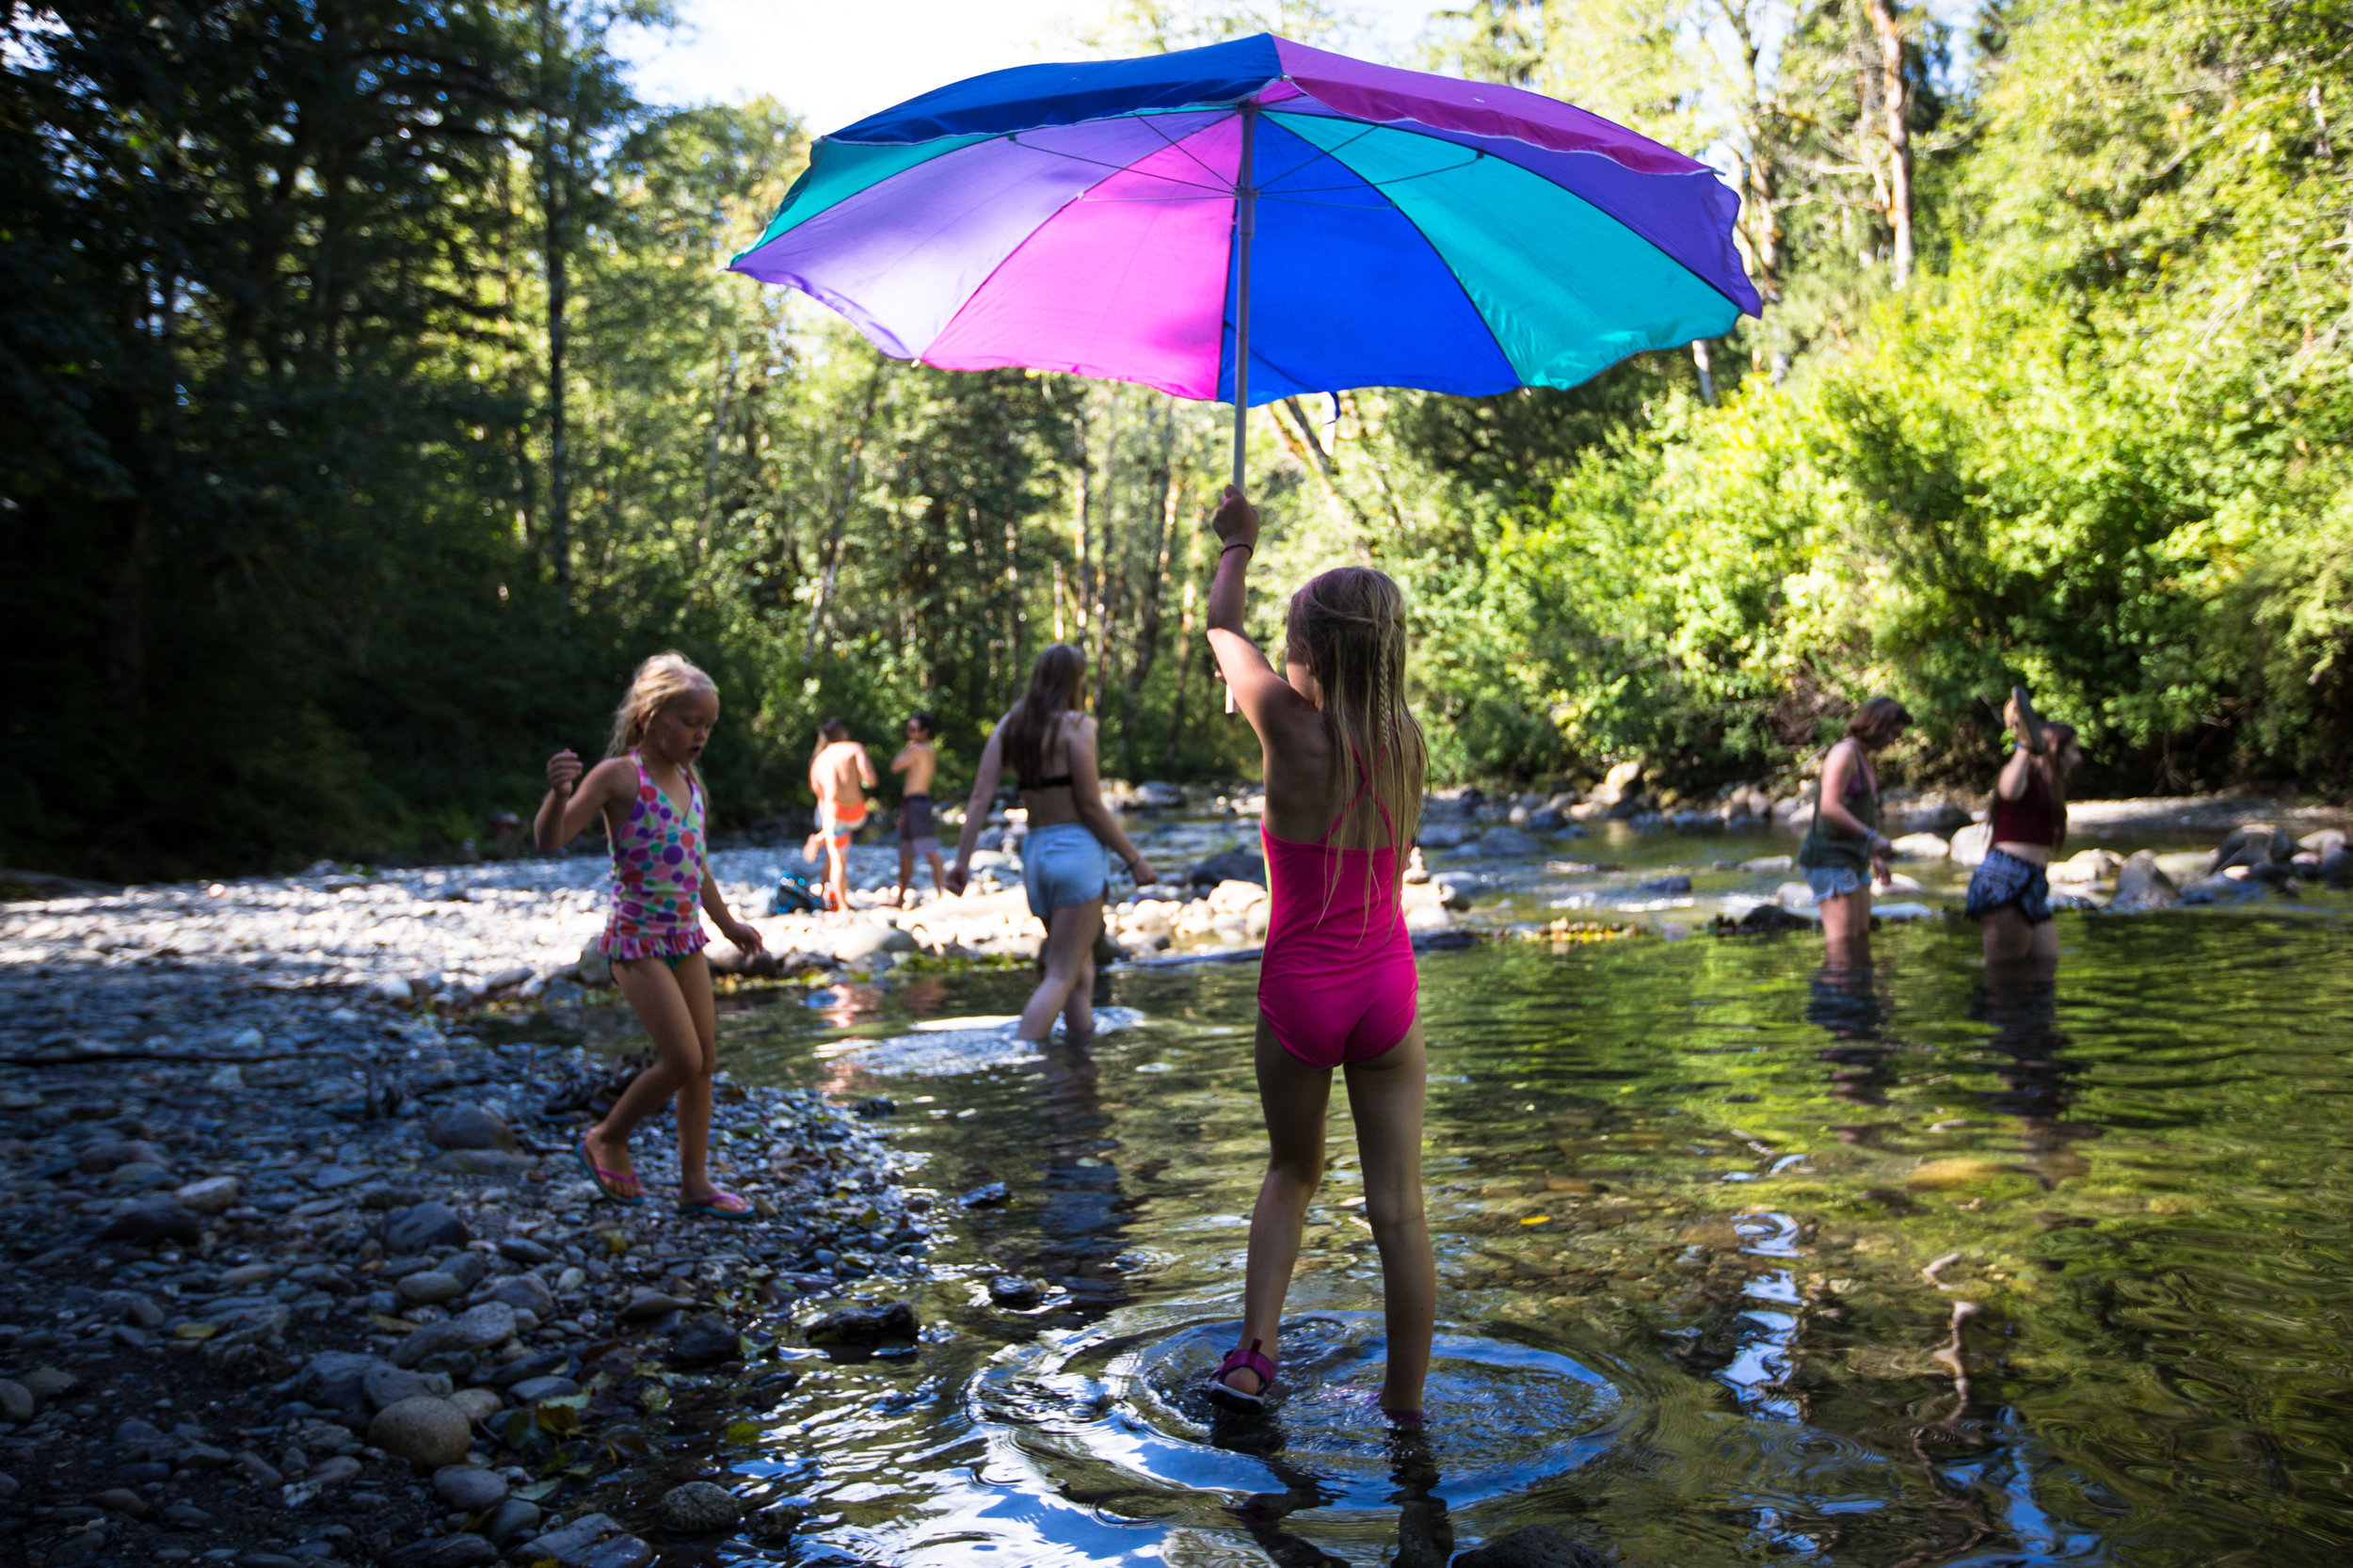 Lily Fronterhouse, 8, holds up an umbrella before wading into the river with her 7-year-old sister Hayley as day one of Summer Meltdown kicks off on Thursday, Aug. 11, 2016 in Darrington, Wa. The annual music festival runs four days with live music, art installations, workshops and on-site camping for attendants.